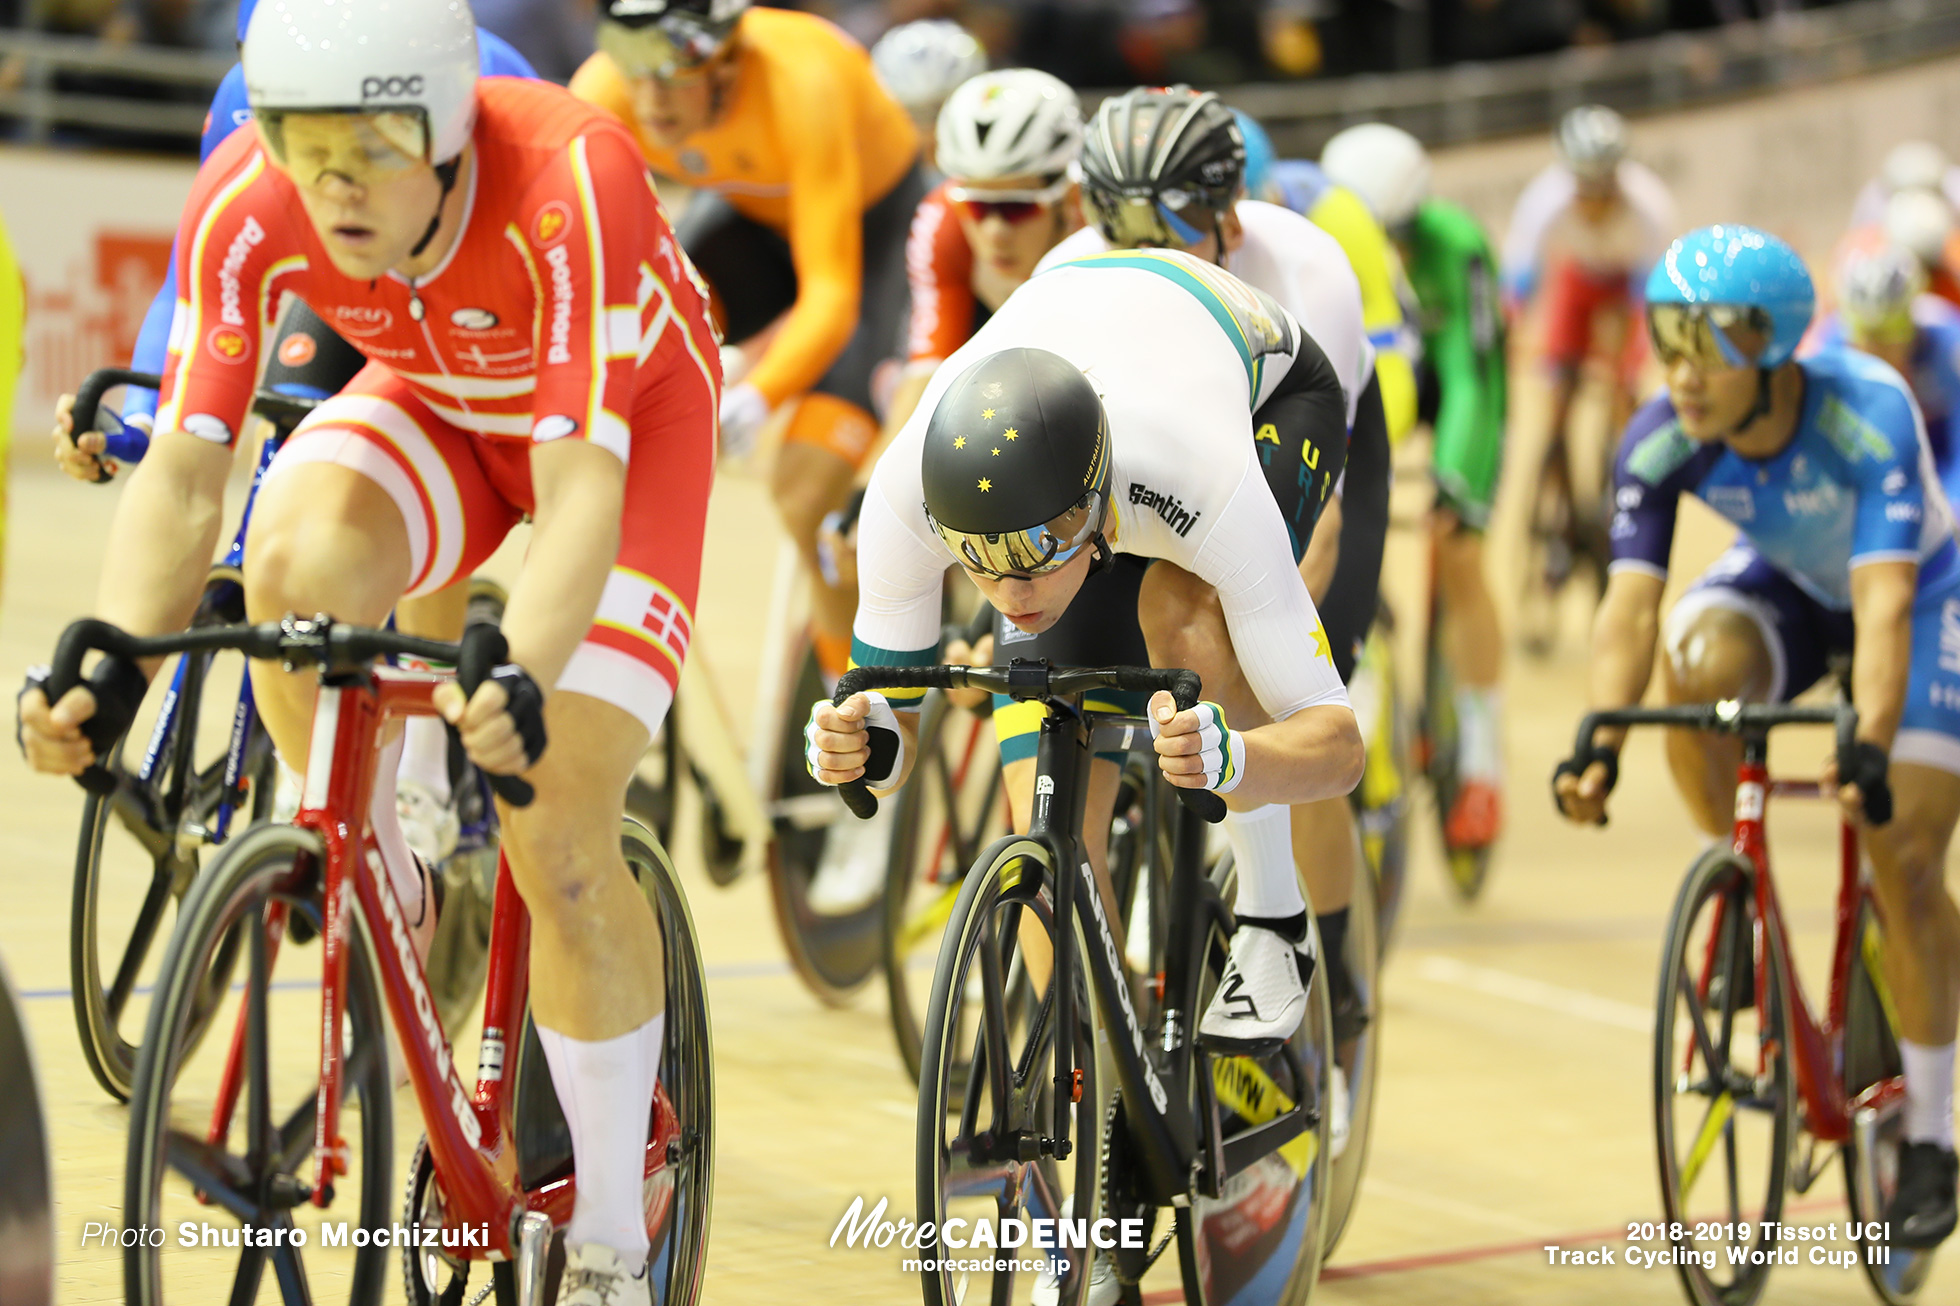 Men's Madison/2018-2019 Track Cycling World Cup III Berlin